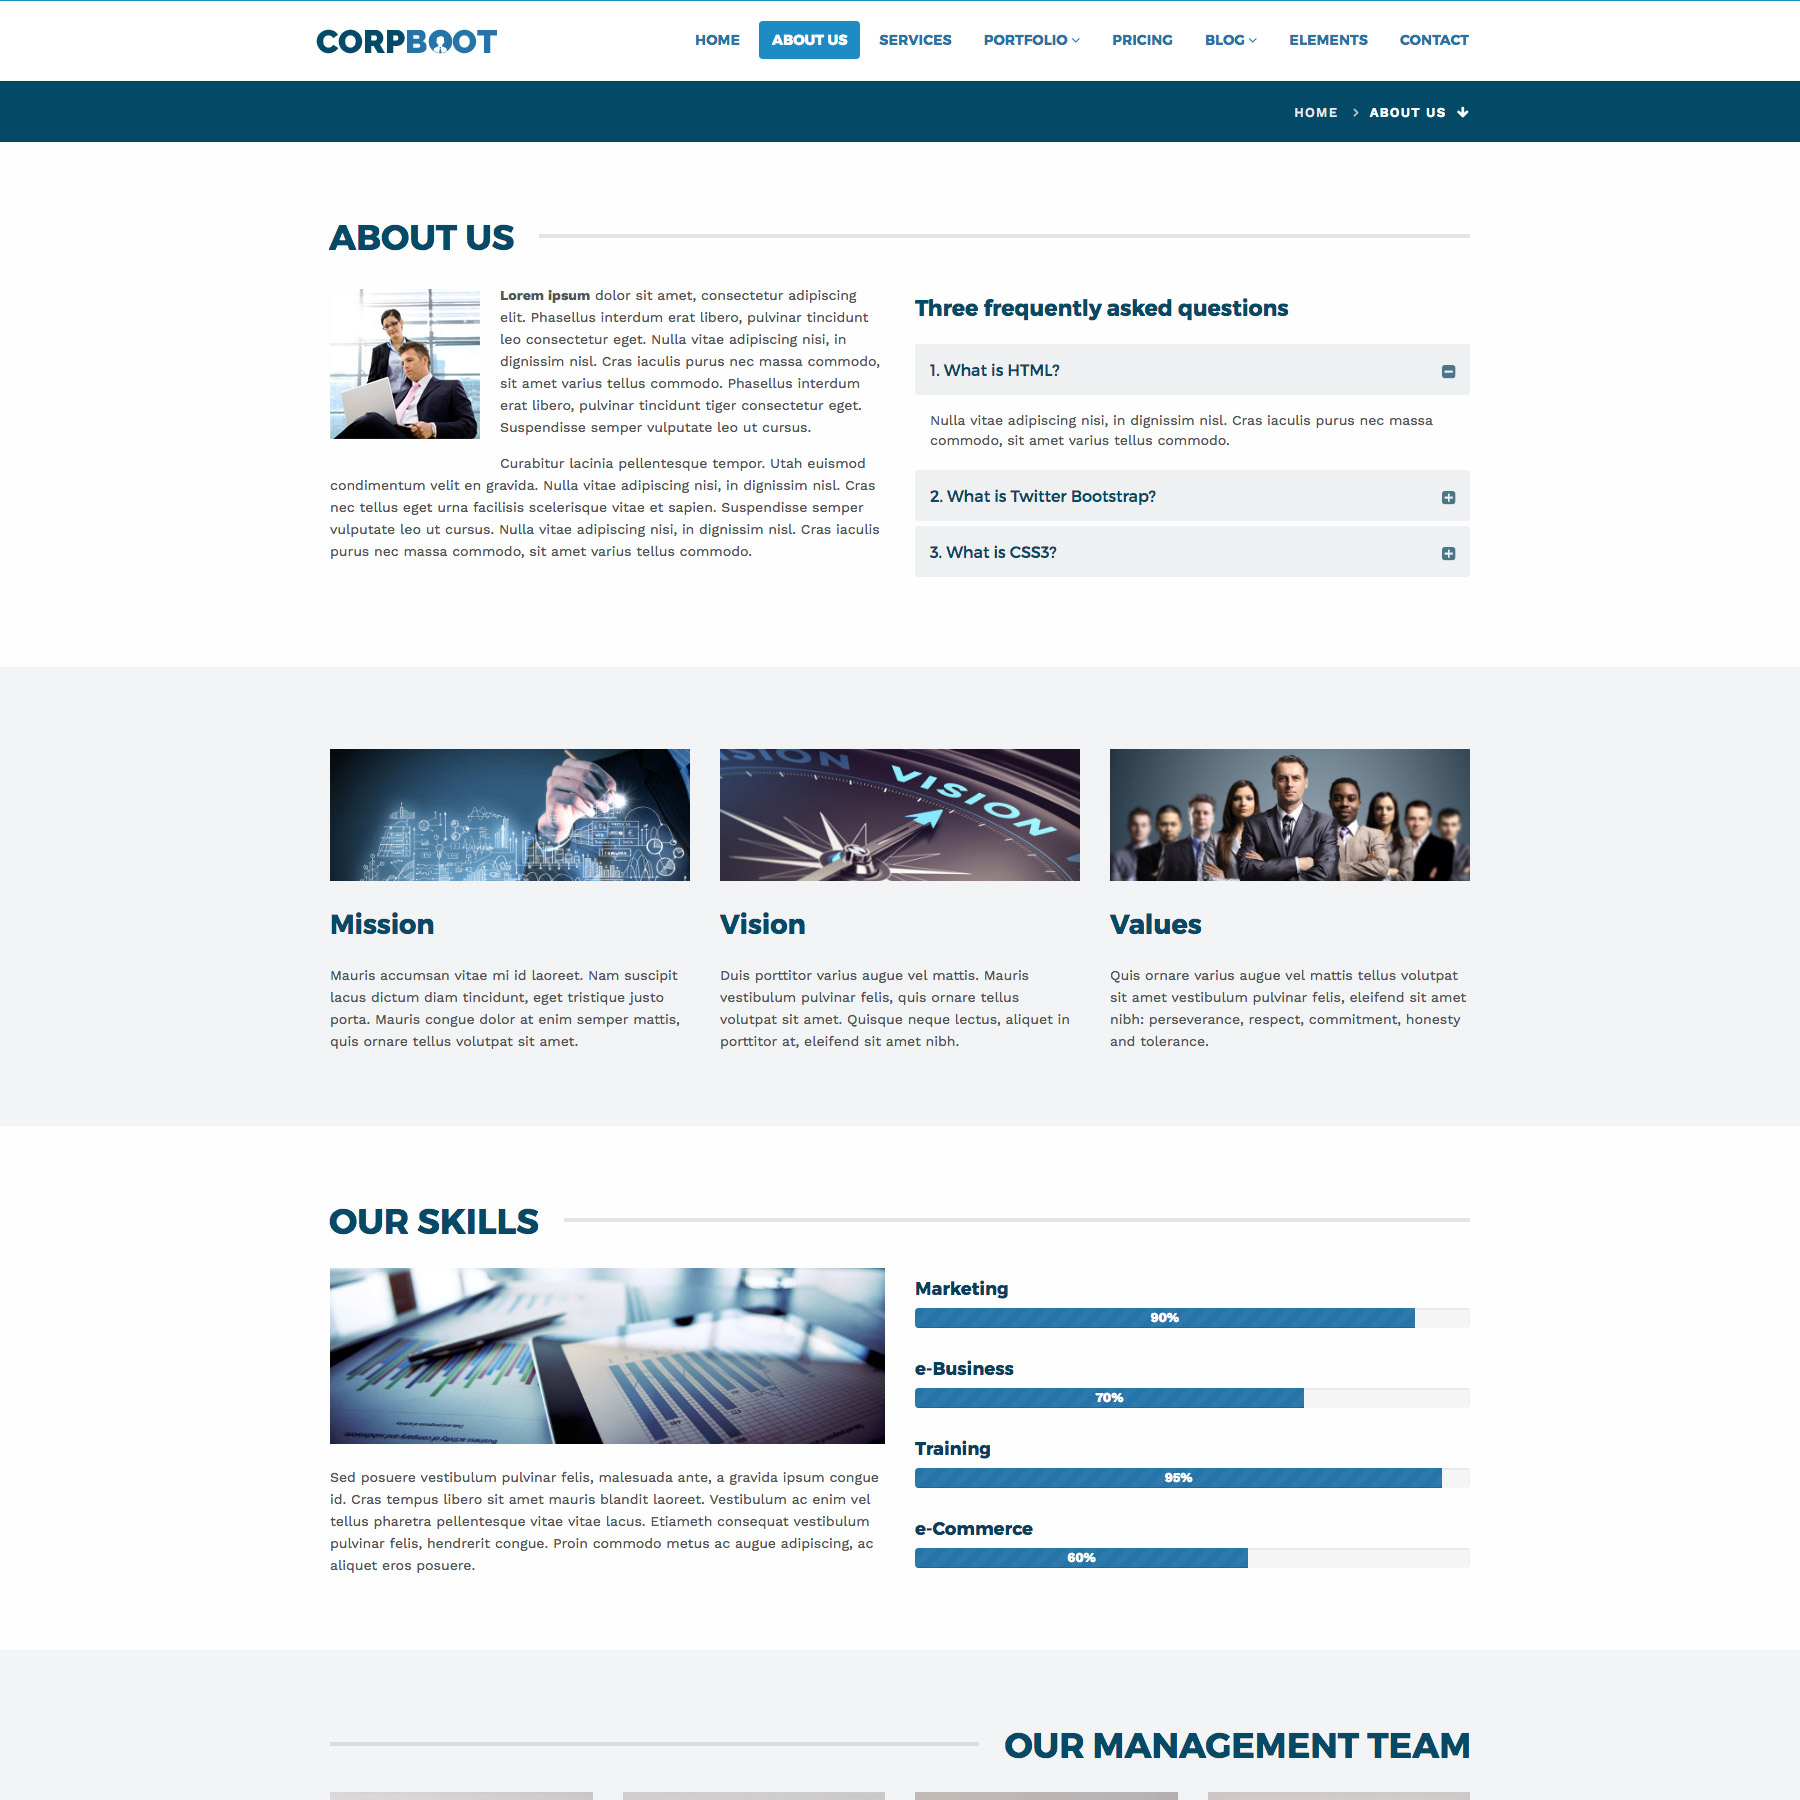 Corpboot Corporate Website Template By Rafamem ThemeForest - About us template for website